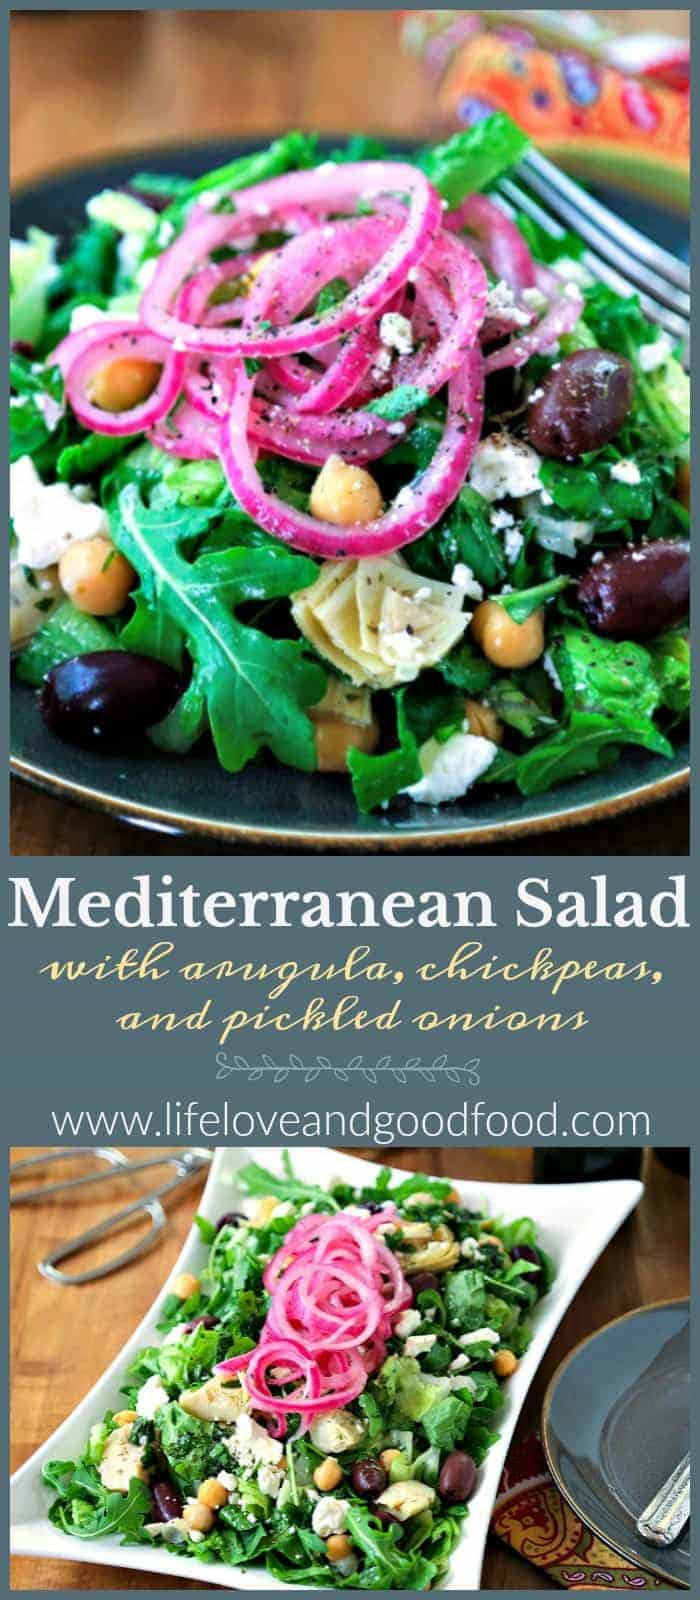 Greek-inspired chopped salad featuring arugula, chickpeas, and pickled red onions with a fresh herb vinaigrette.